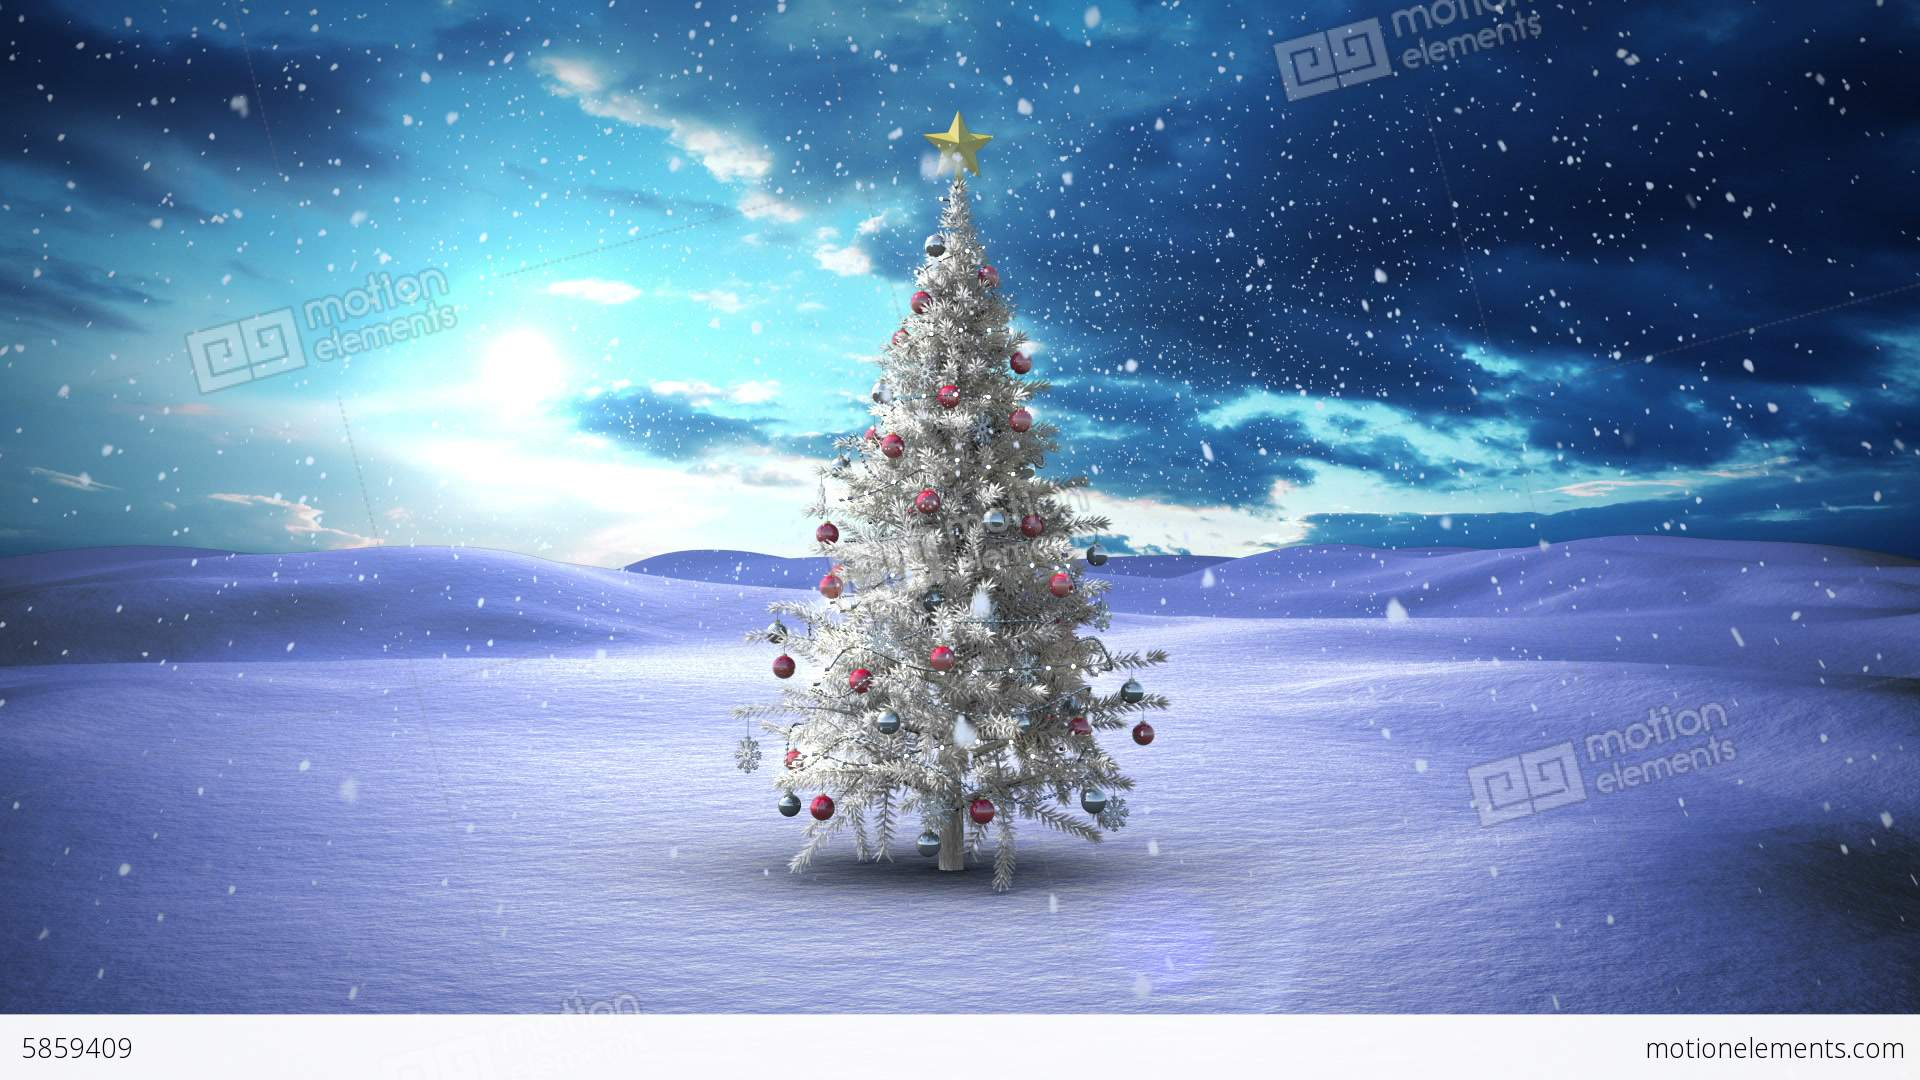 Snow Falling Christmas Tree In Snowy Landscape Stock ...